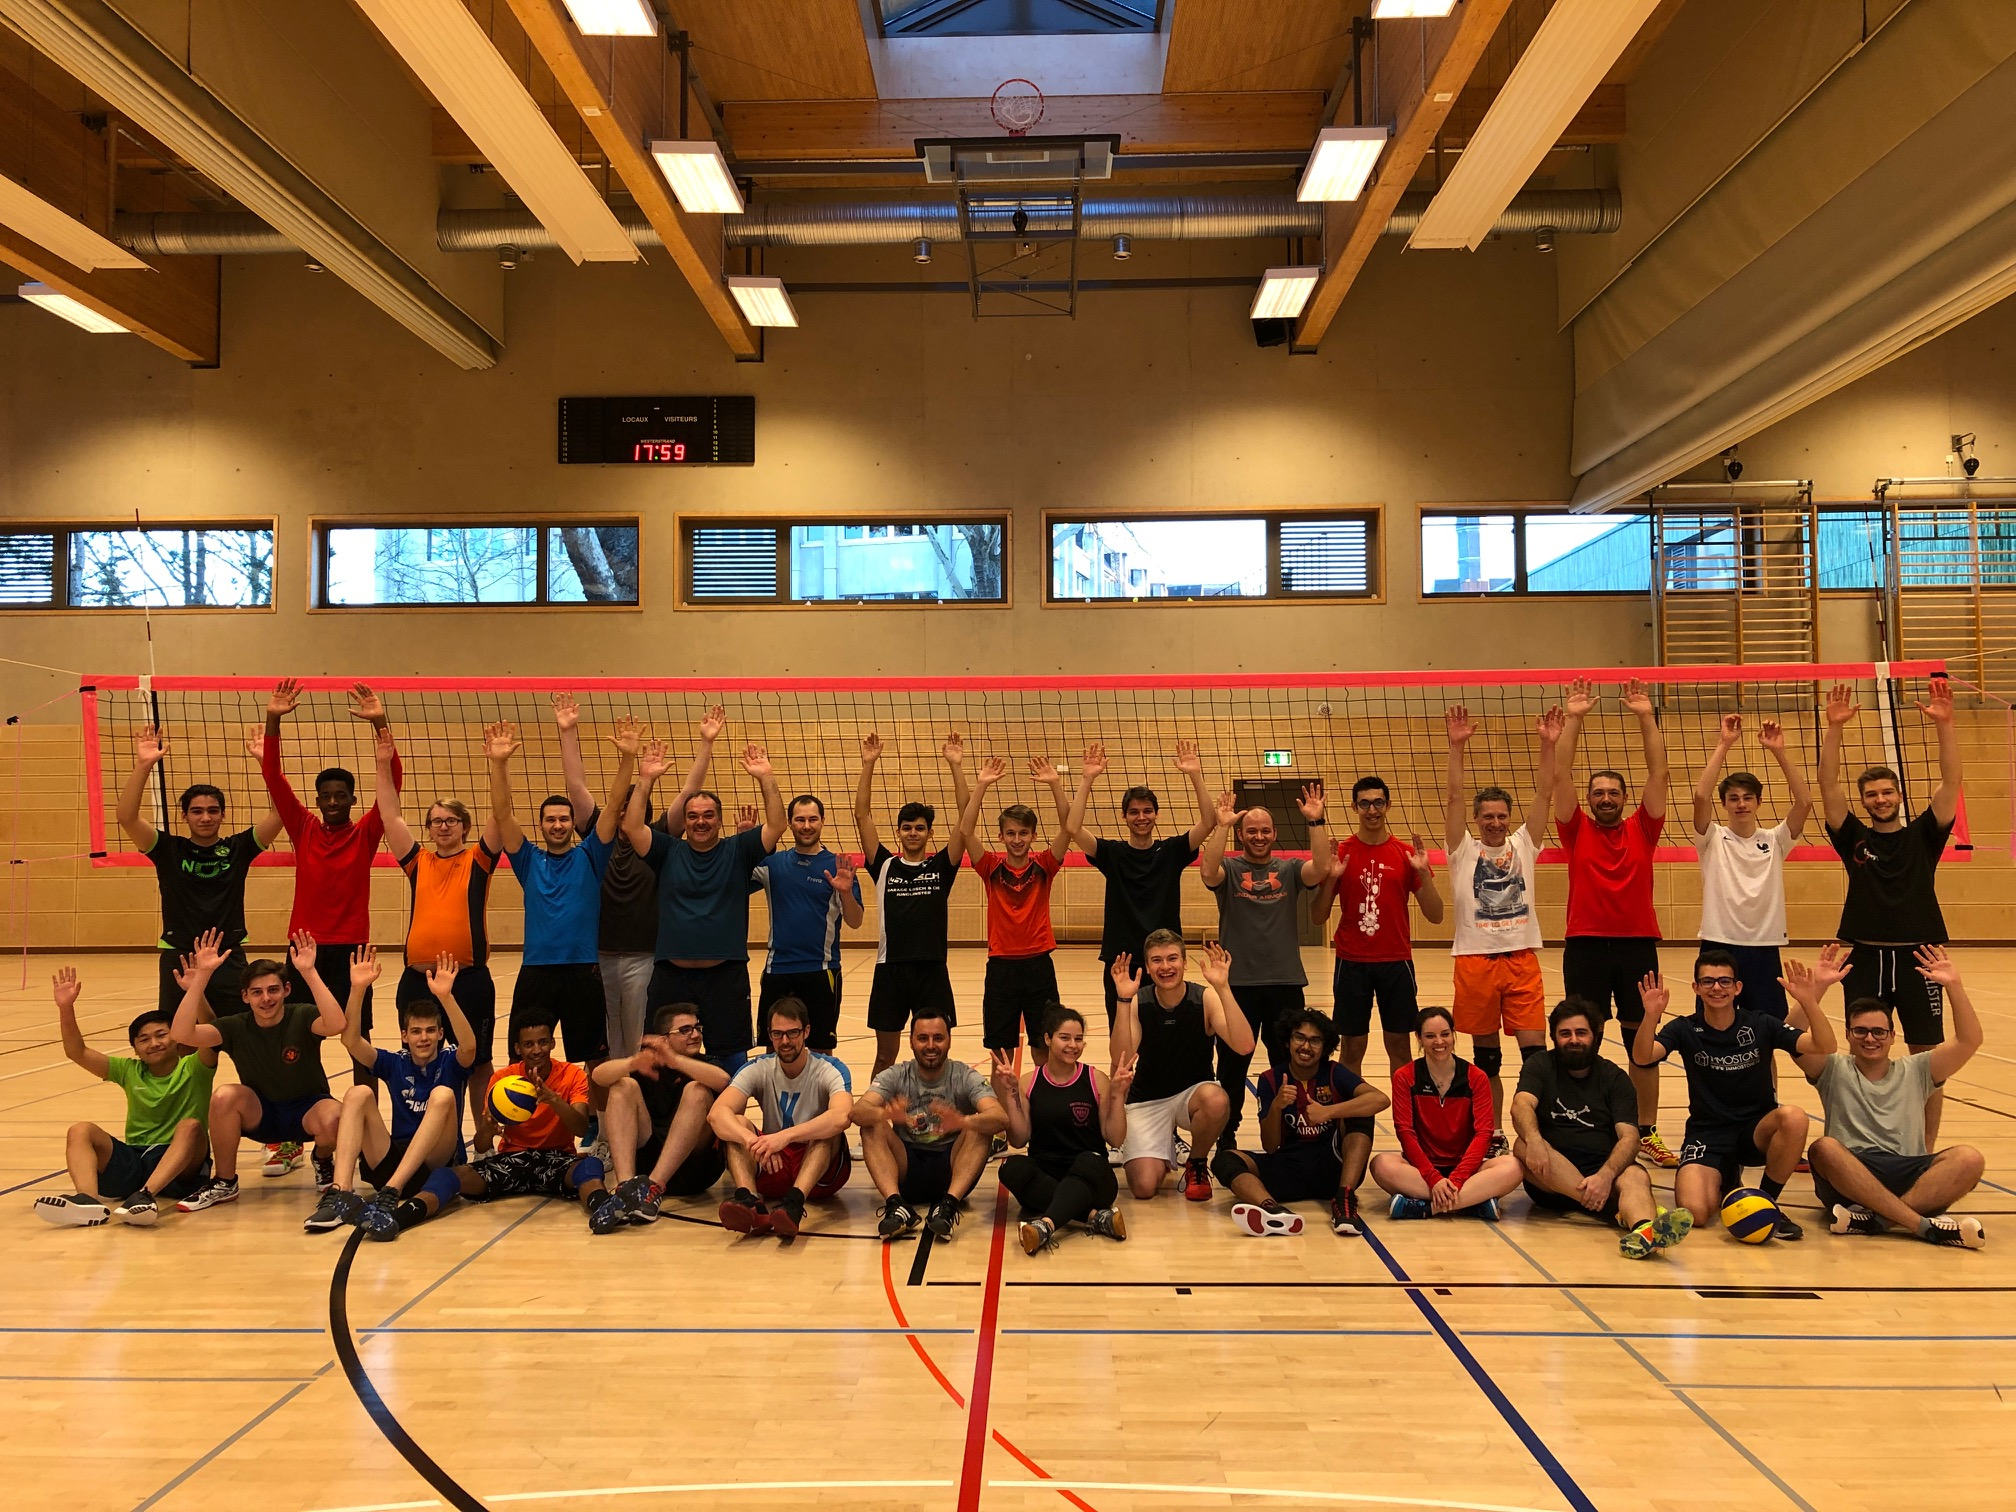 2019-02-27-volley-lam-lpem-1.jpeg